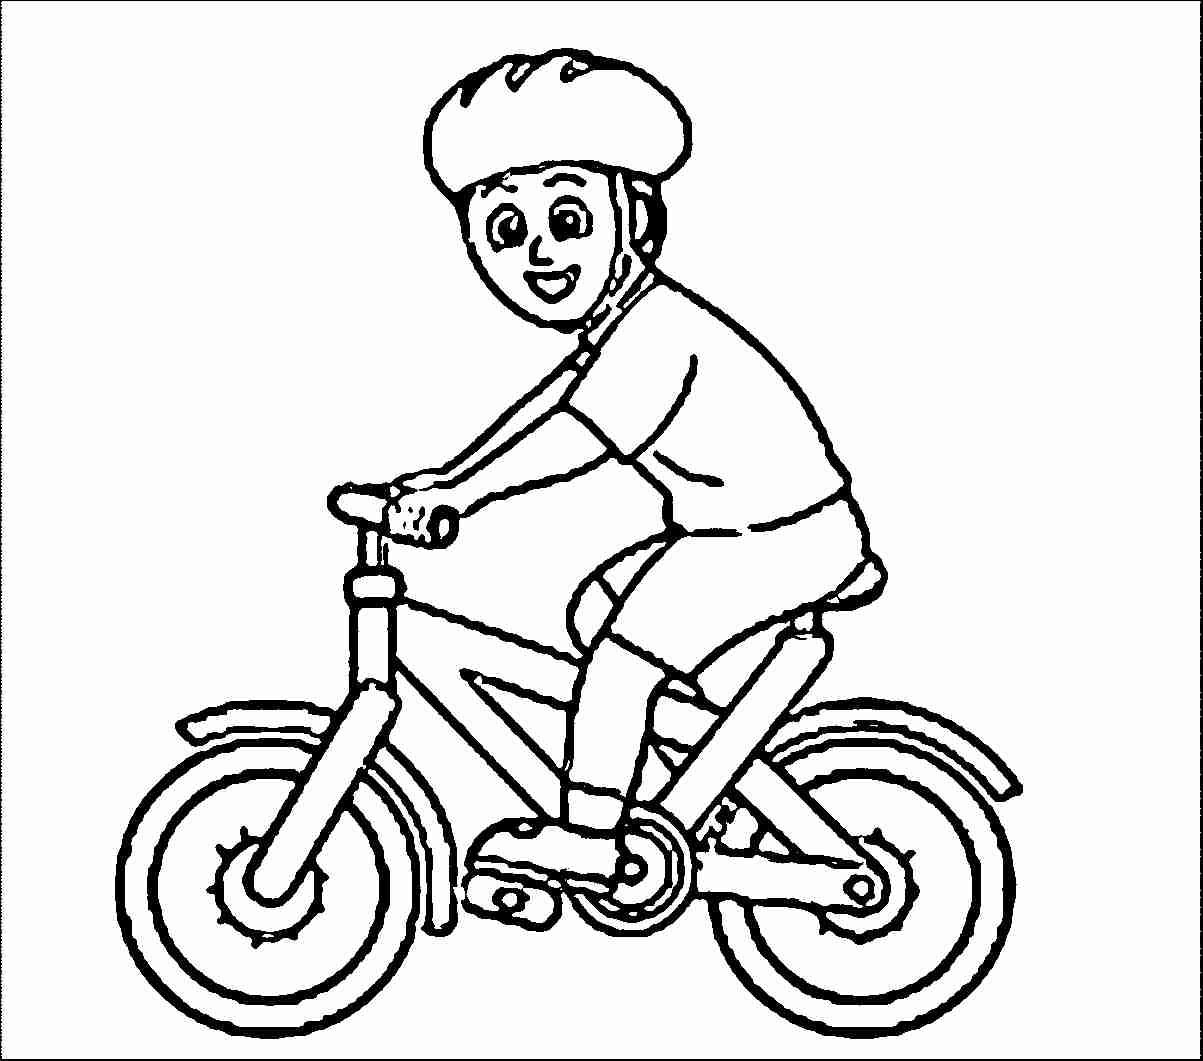 1203x1061 Bike Coloring Pages Printable Image Remarkable Bicycle Page